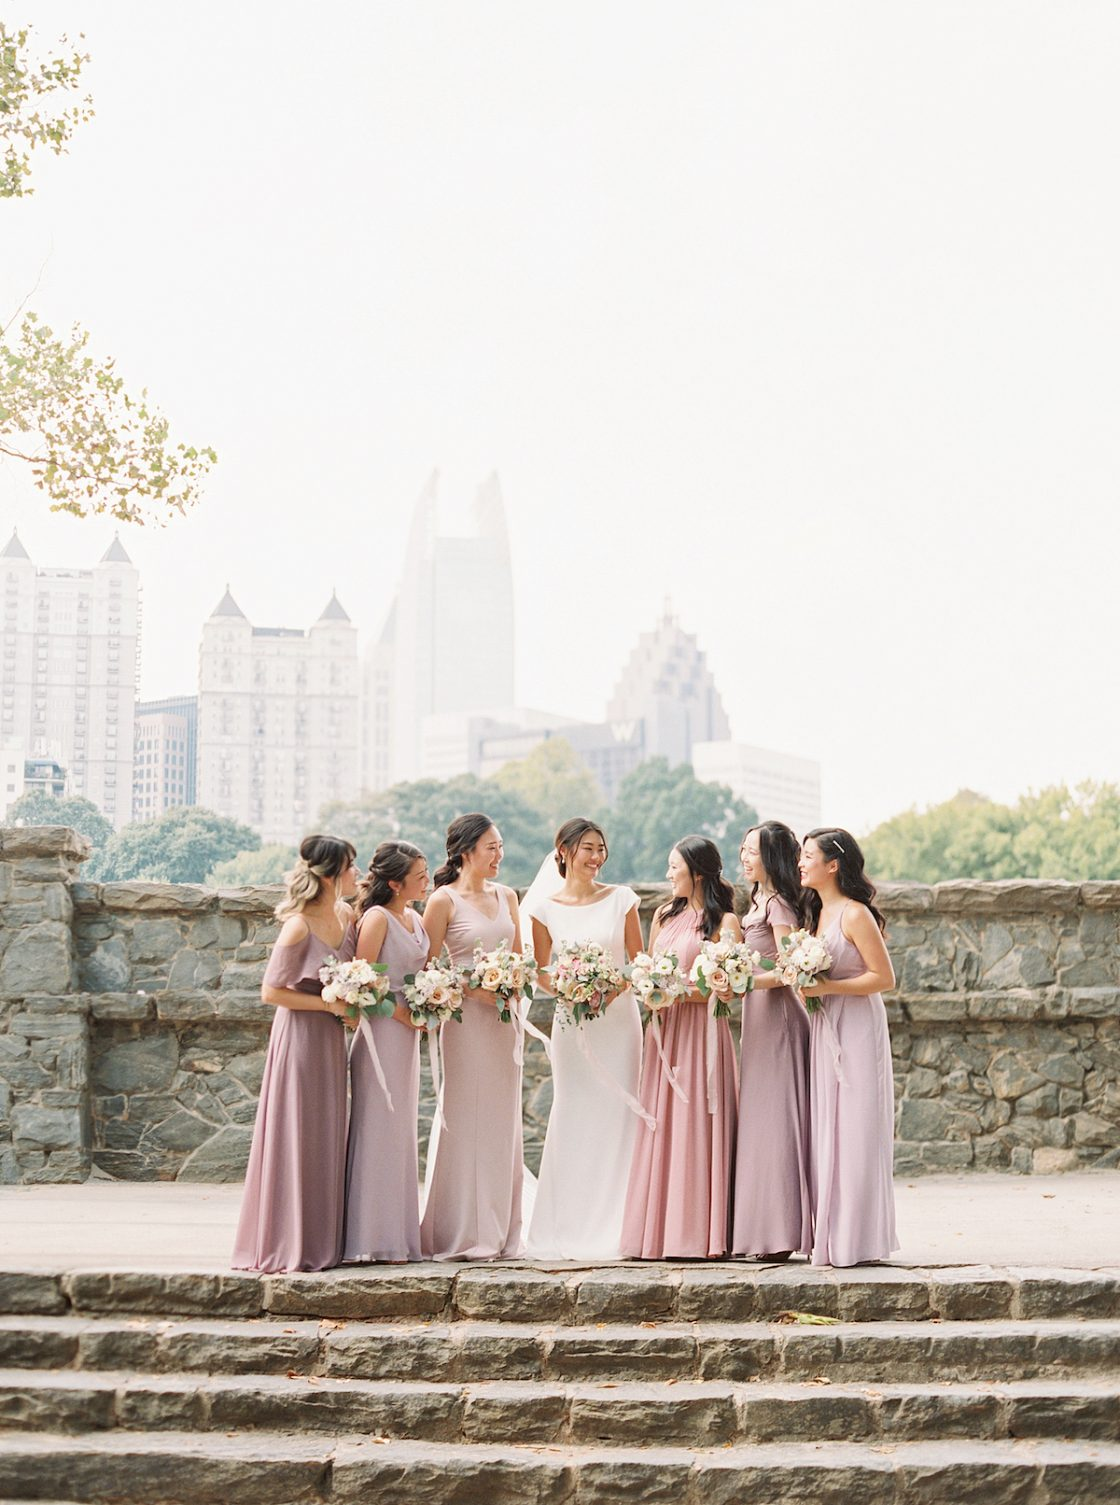 Dusty Rose Blush Bridesmaids Dresses